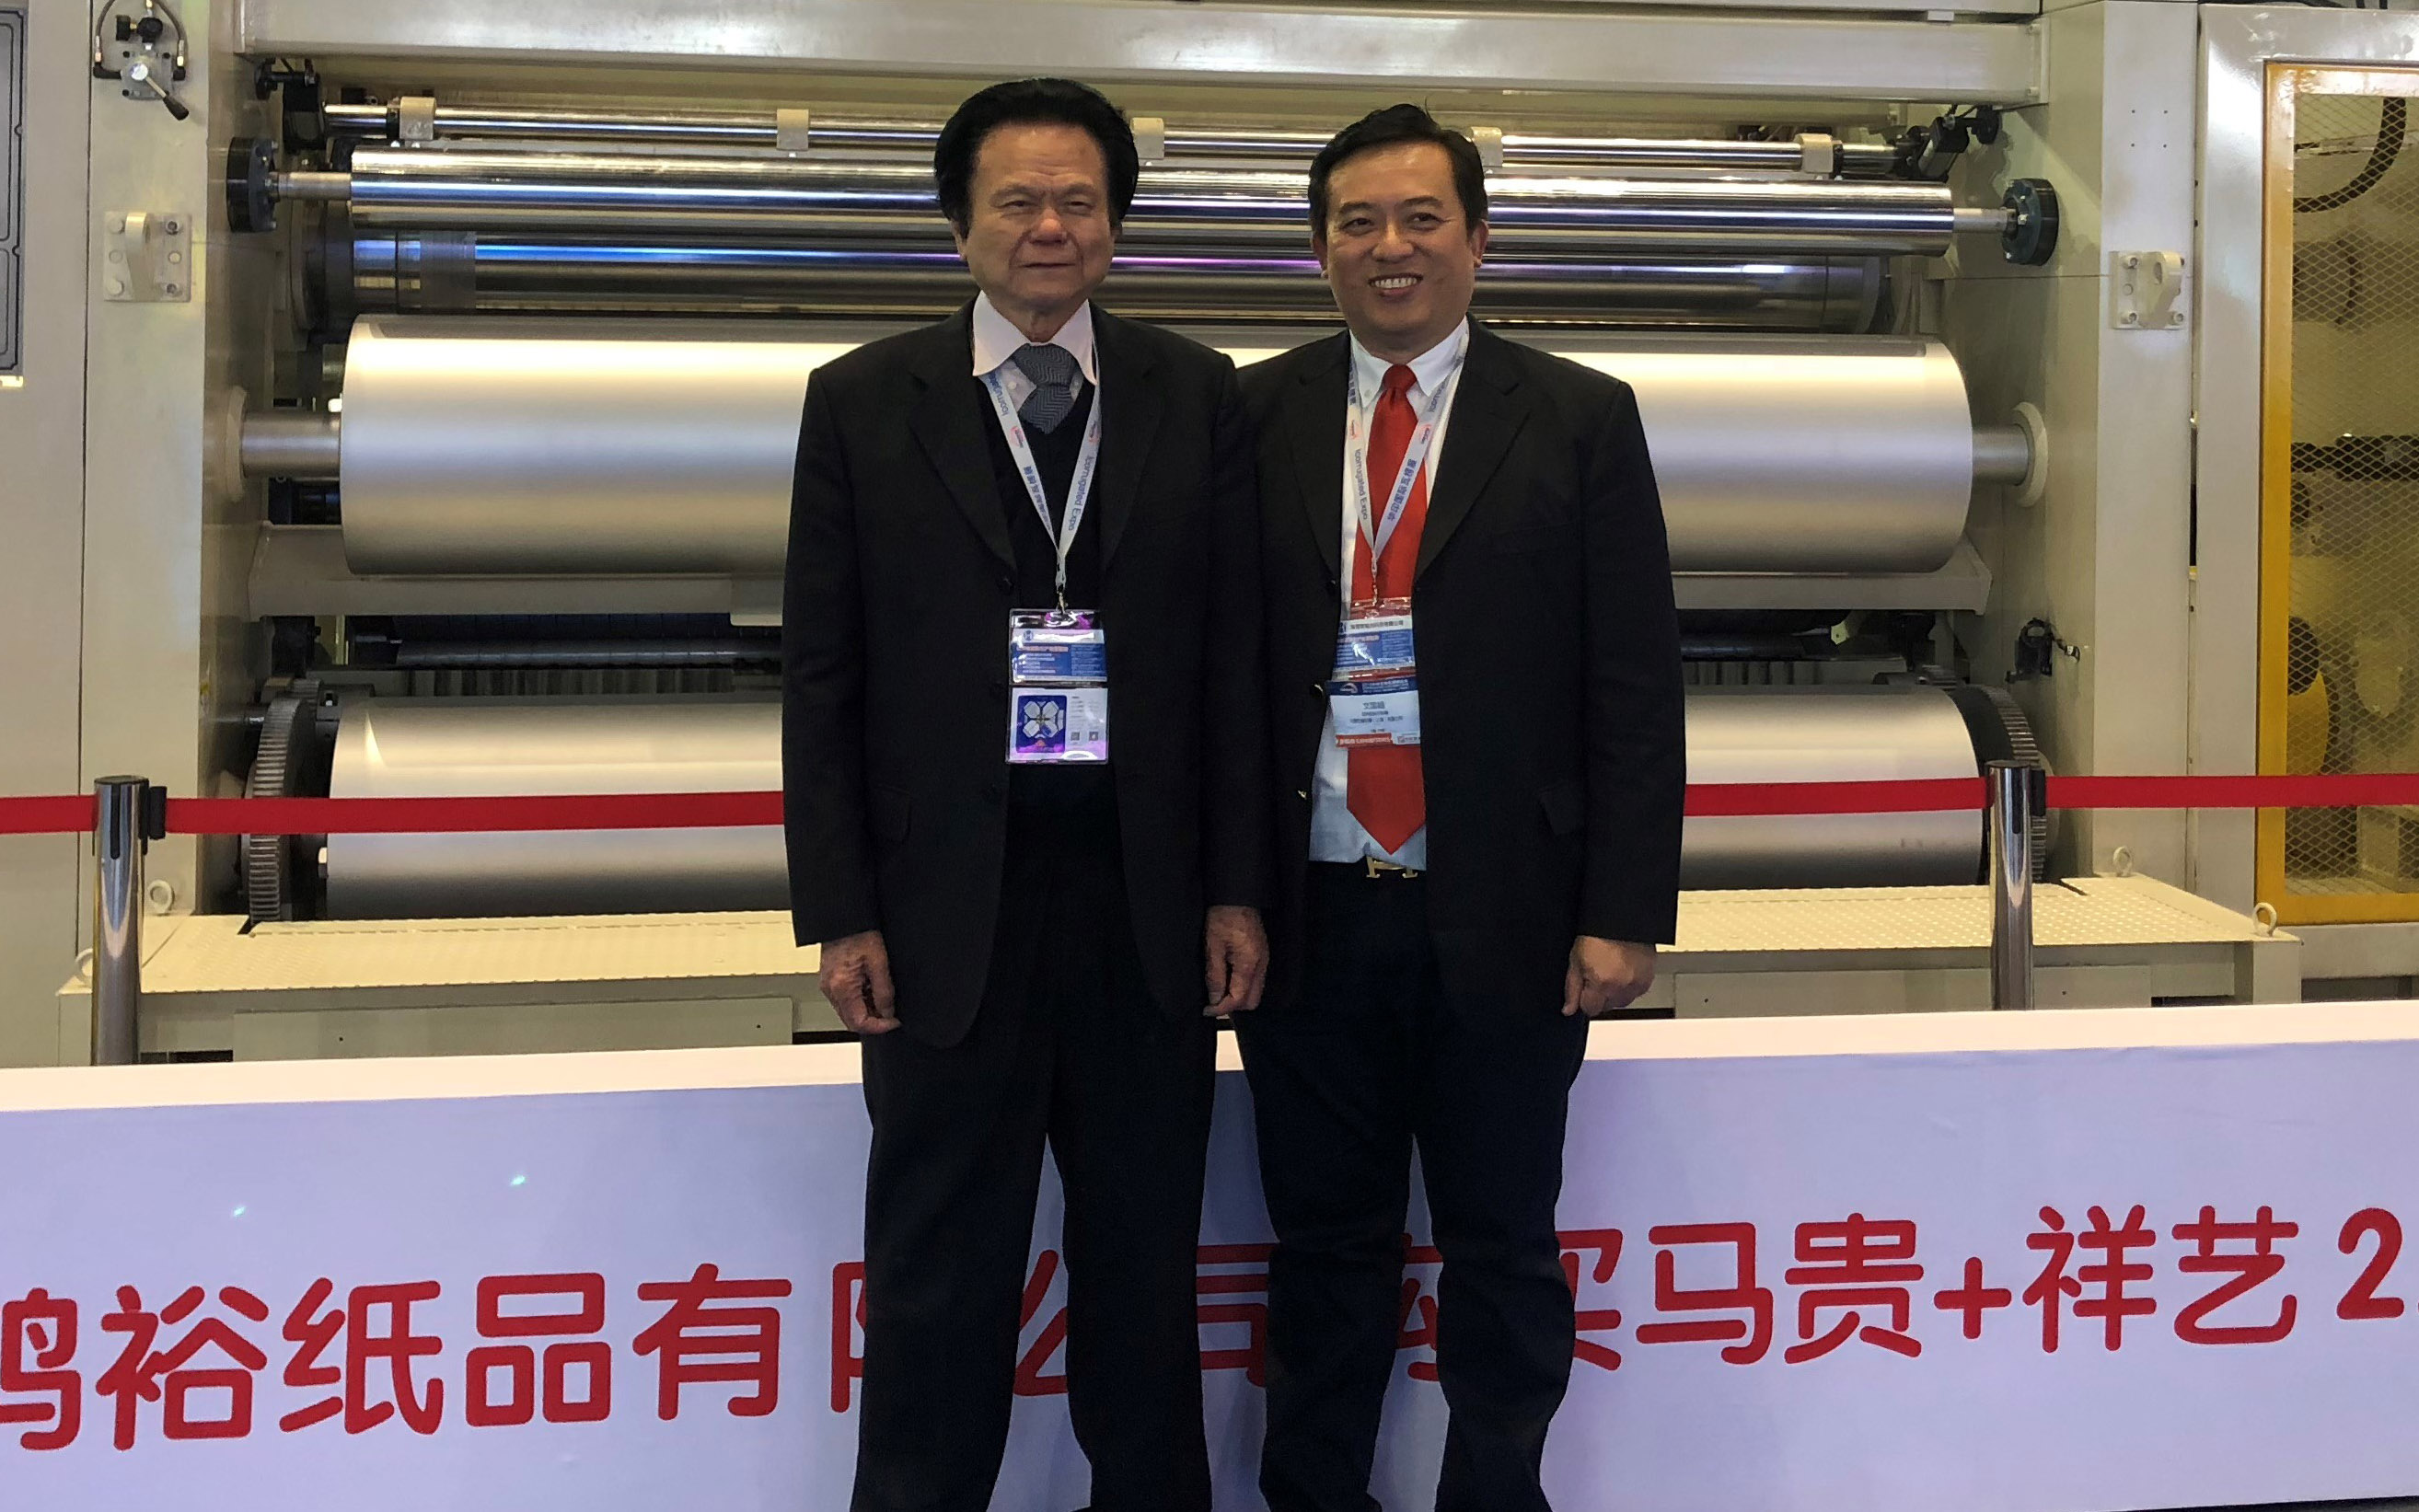 K&H Machinery is now part of BW Papersystems. President and Board Chairman of K&H Wu Kuan Hsiung is pictured here (l.) with Eddie Mun, newly appointed Managing Director of K&H in Dongguan, China.